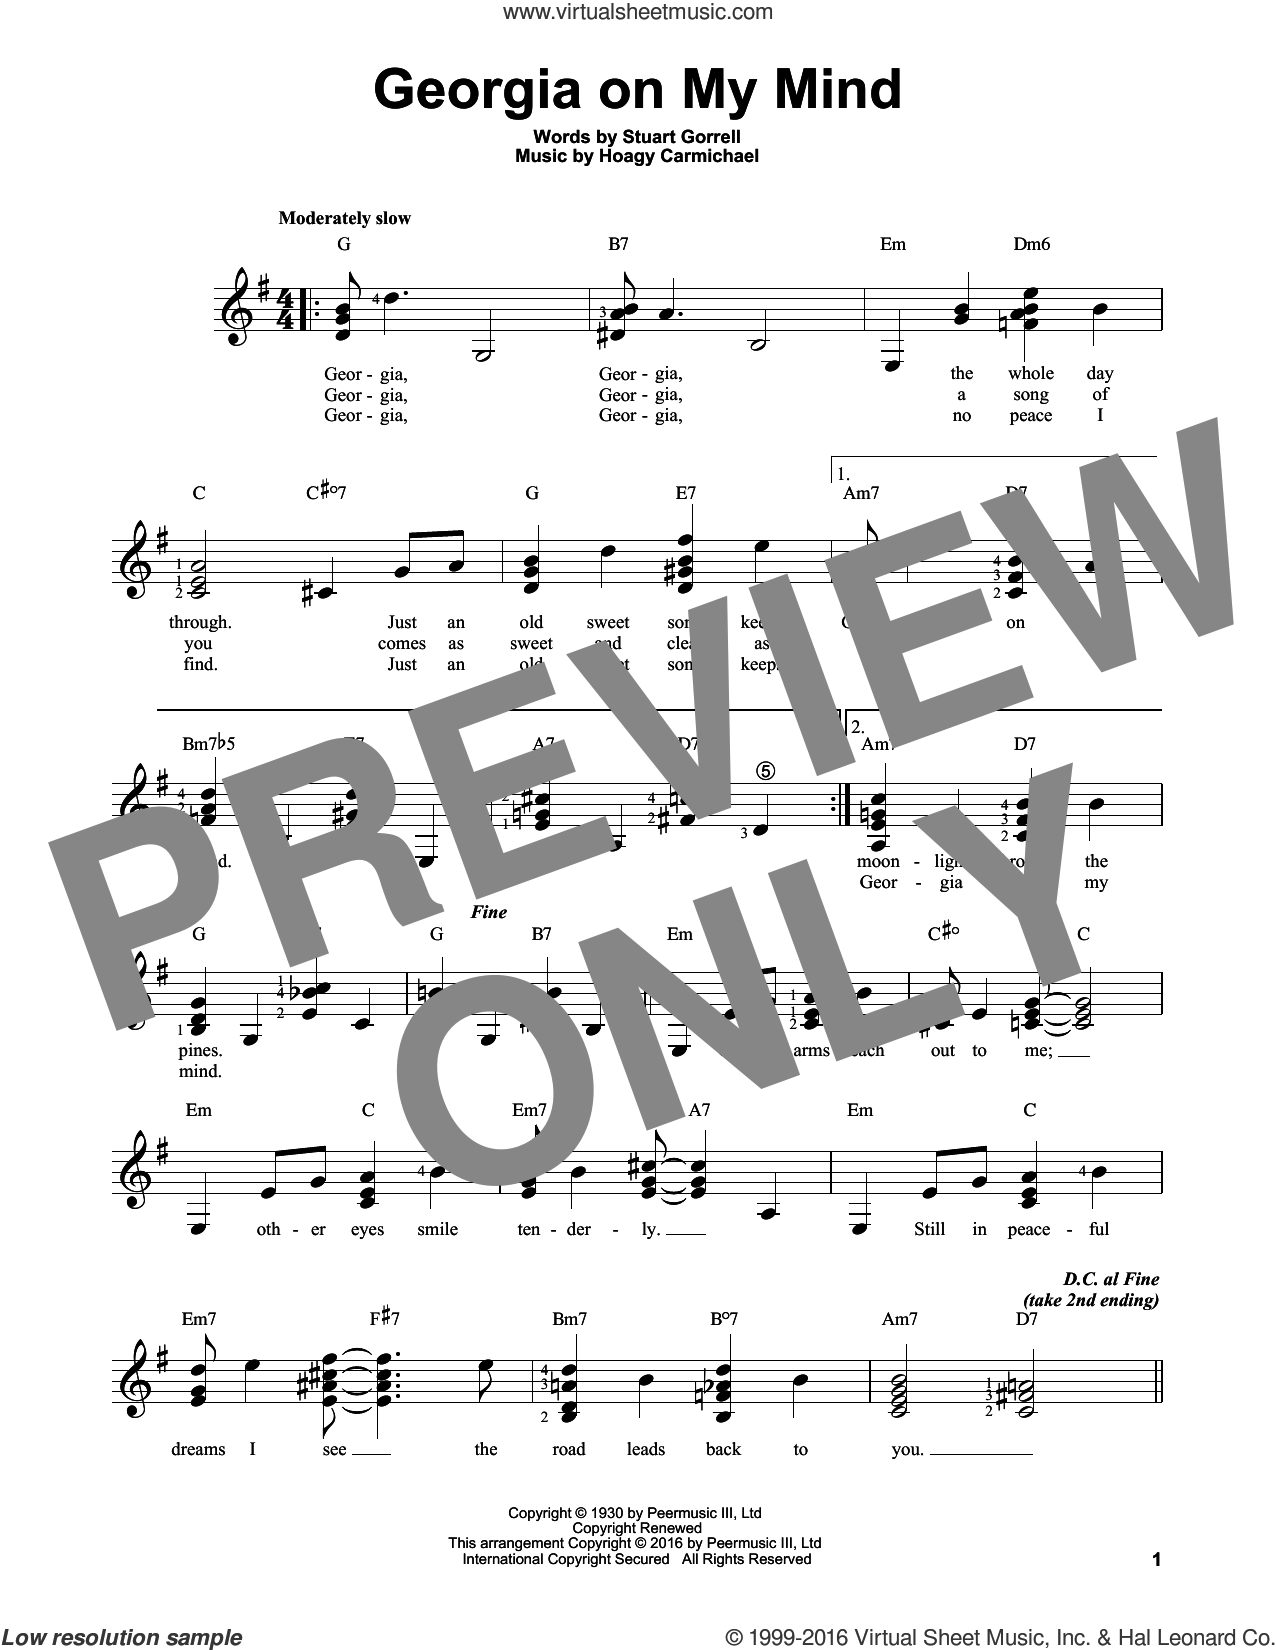 Georgia On My Mind sheet music for guitar solo (chords) by Ray Charles, Willie Nelson, Hoagy Carmichael and Stuart Gorrell, easy guitar (chords). Score Image Preview.